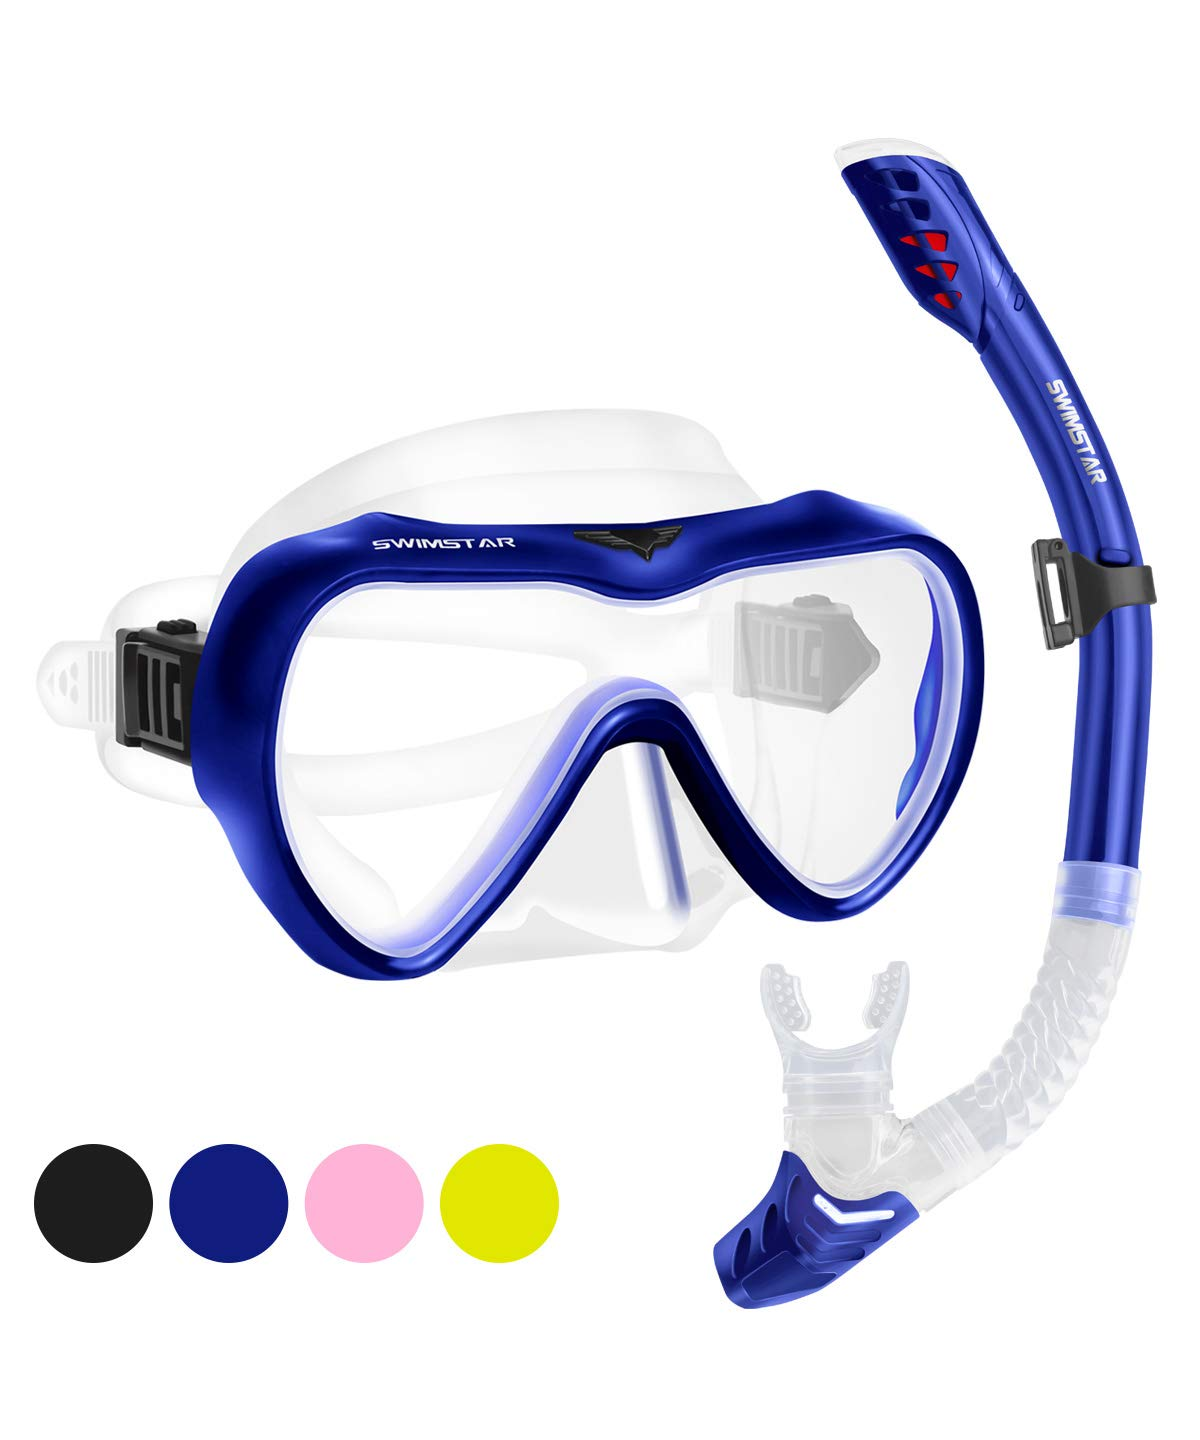 2019 Snorkel Set for Women and Men, Anti Fog Tempered Glass Snorkel Mask for Snorkeling, Swimming and Scuba Diving, Anti Leak Dry Top Snorkeling Gear Panoramic Silicone Goggle No Leak Blue by SwimStar